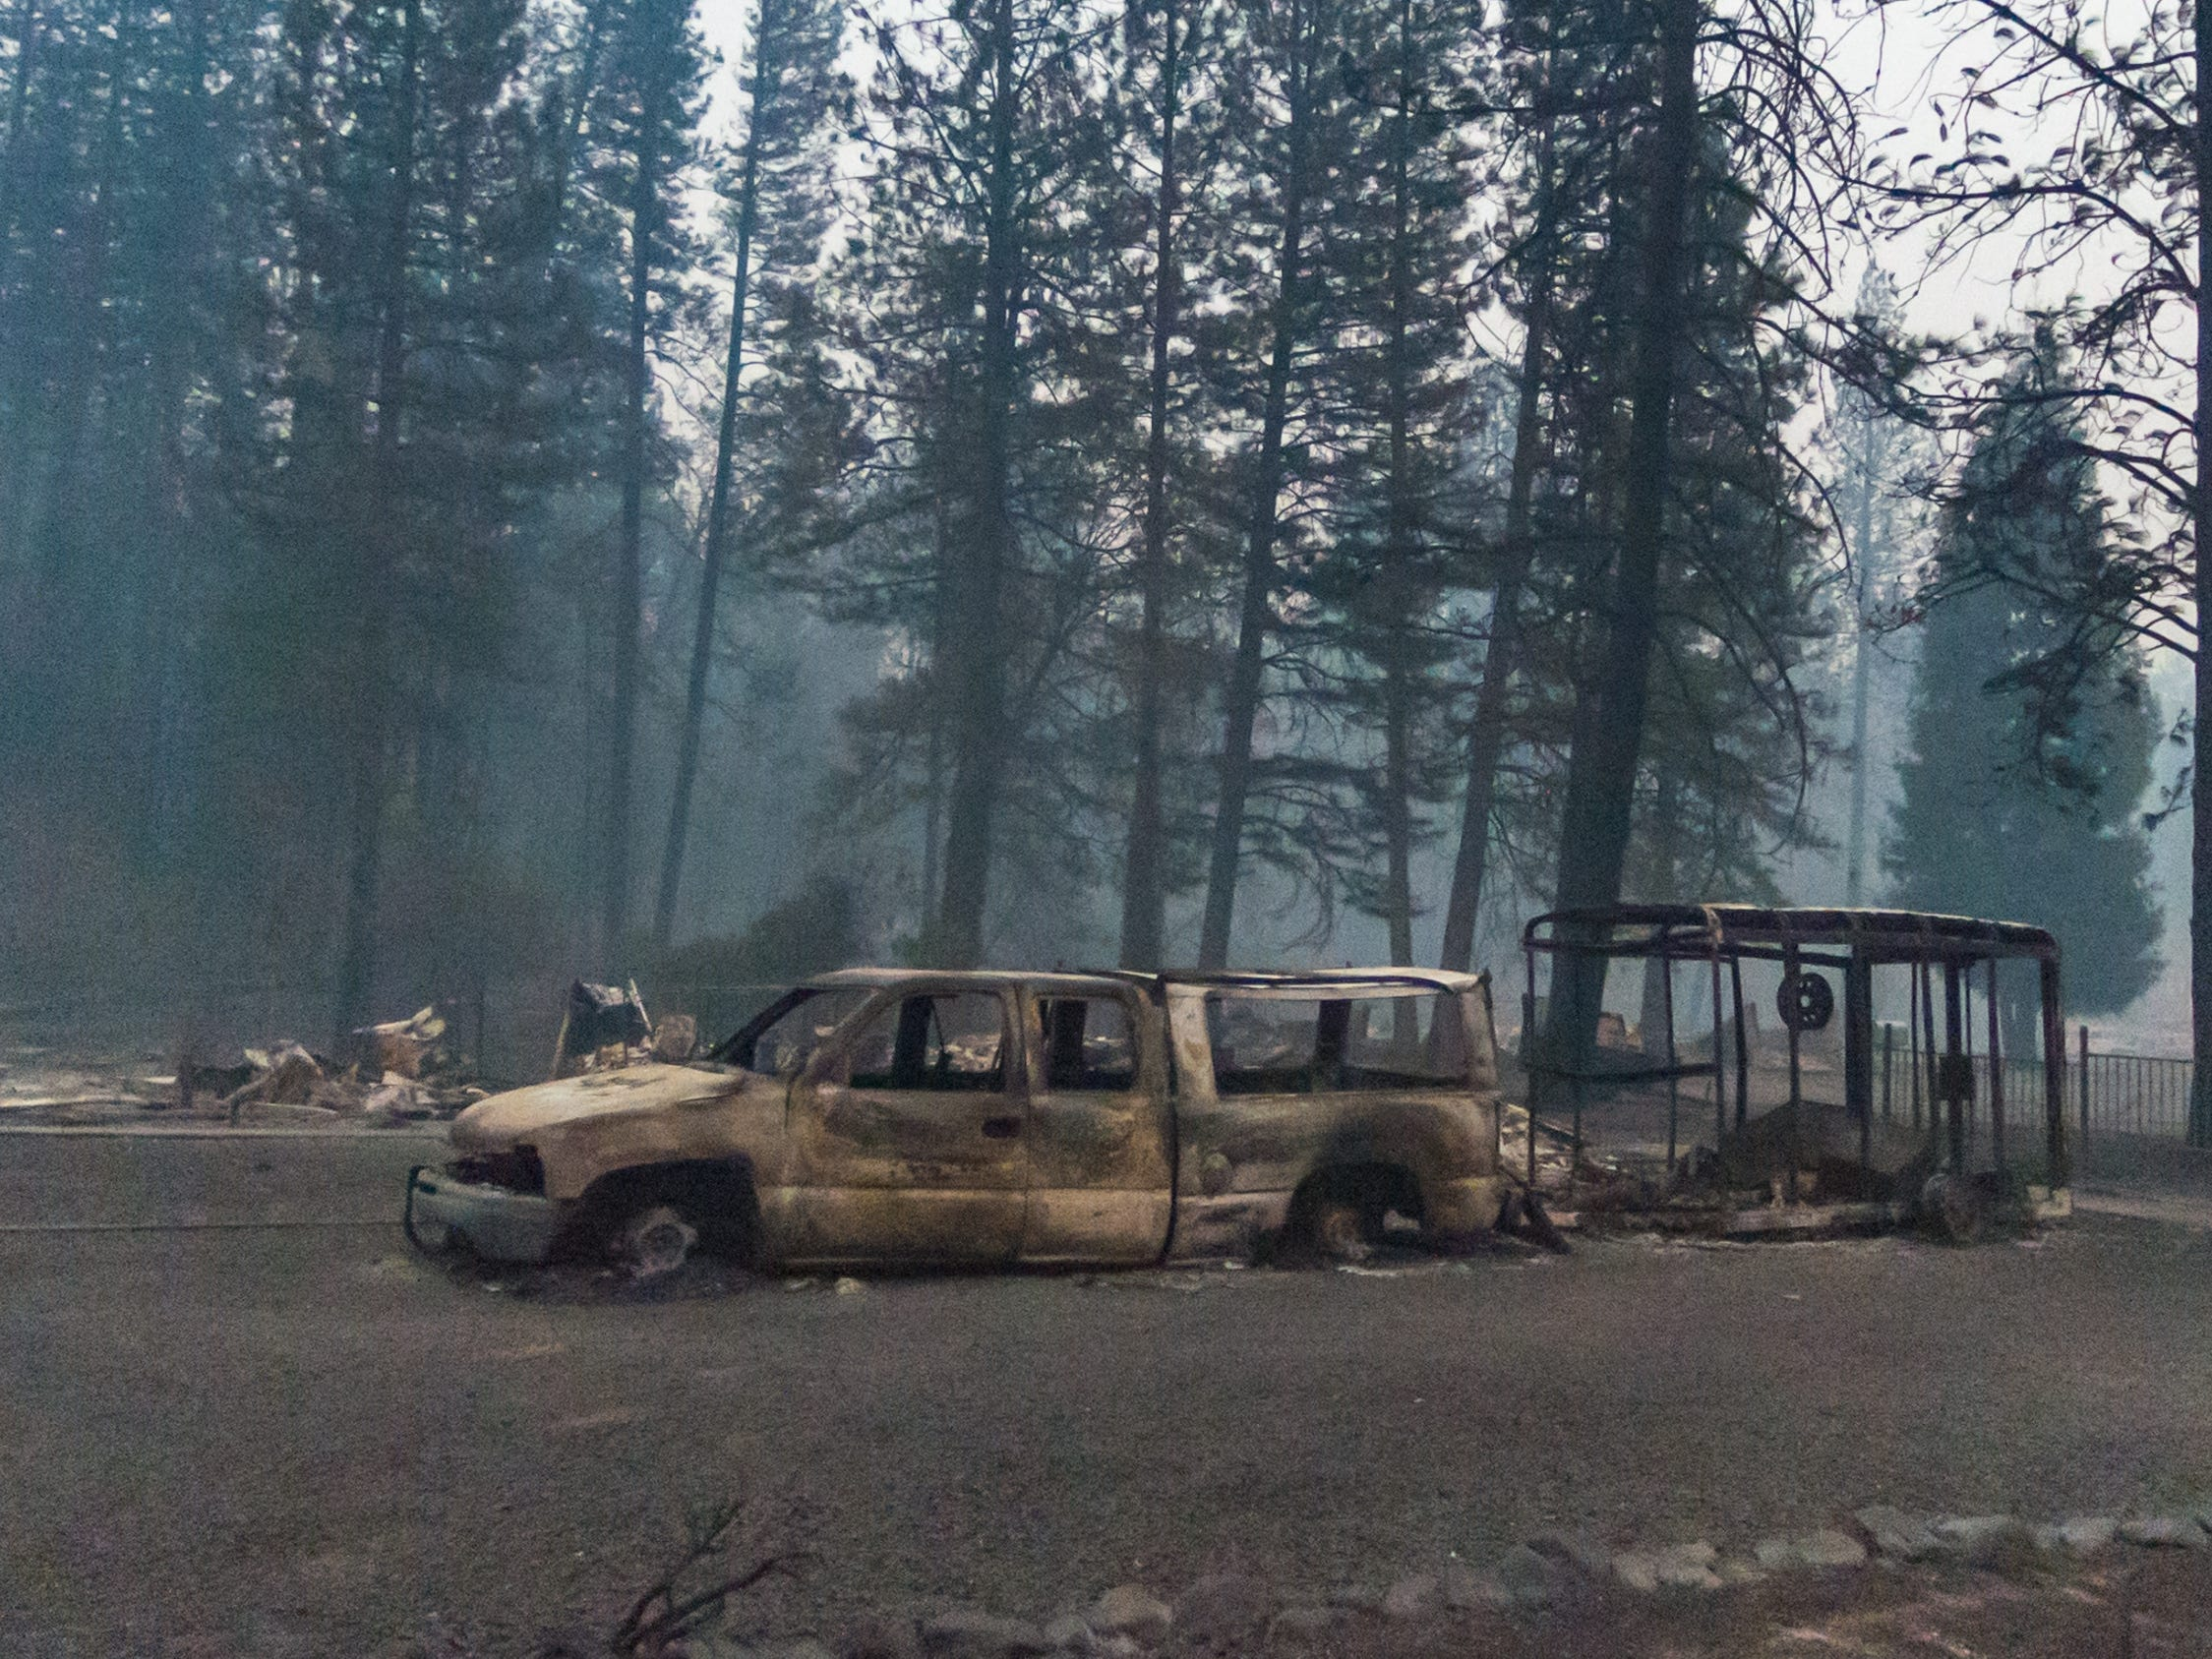 Destruction caused by The Camp Fire near Paradise, Calif., Tuesday, Nov. 13, 2018.